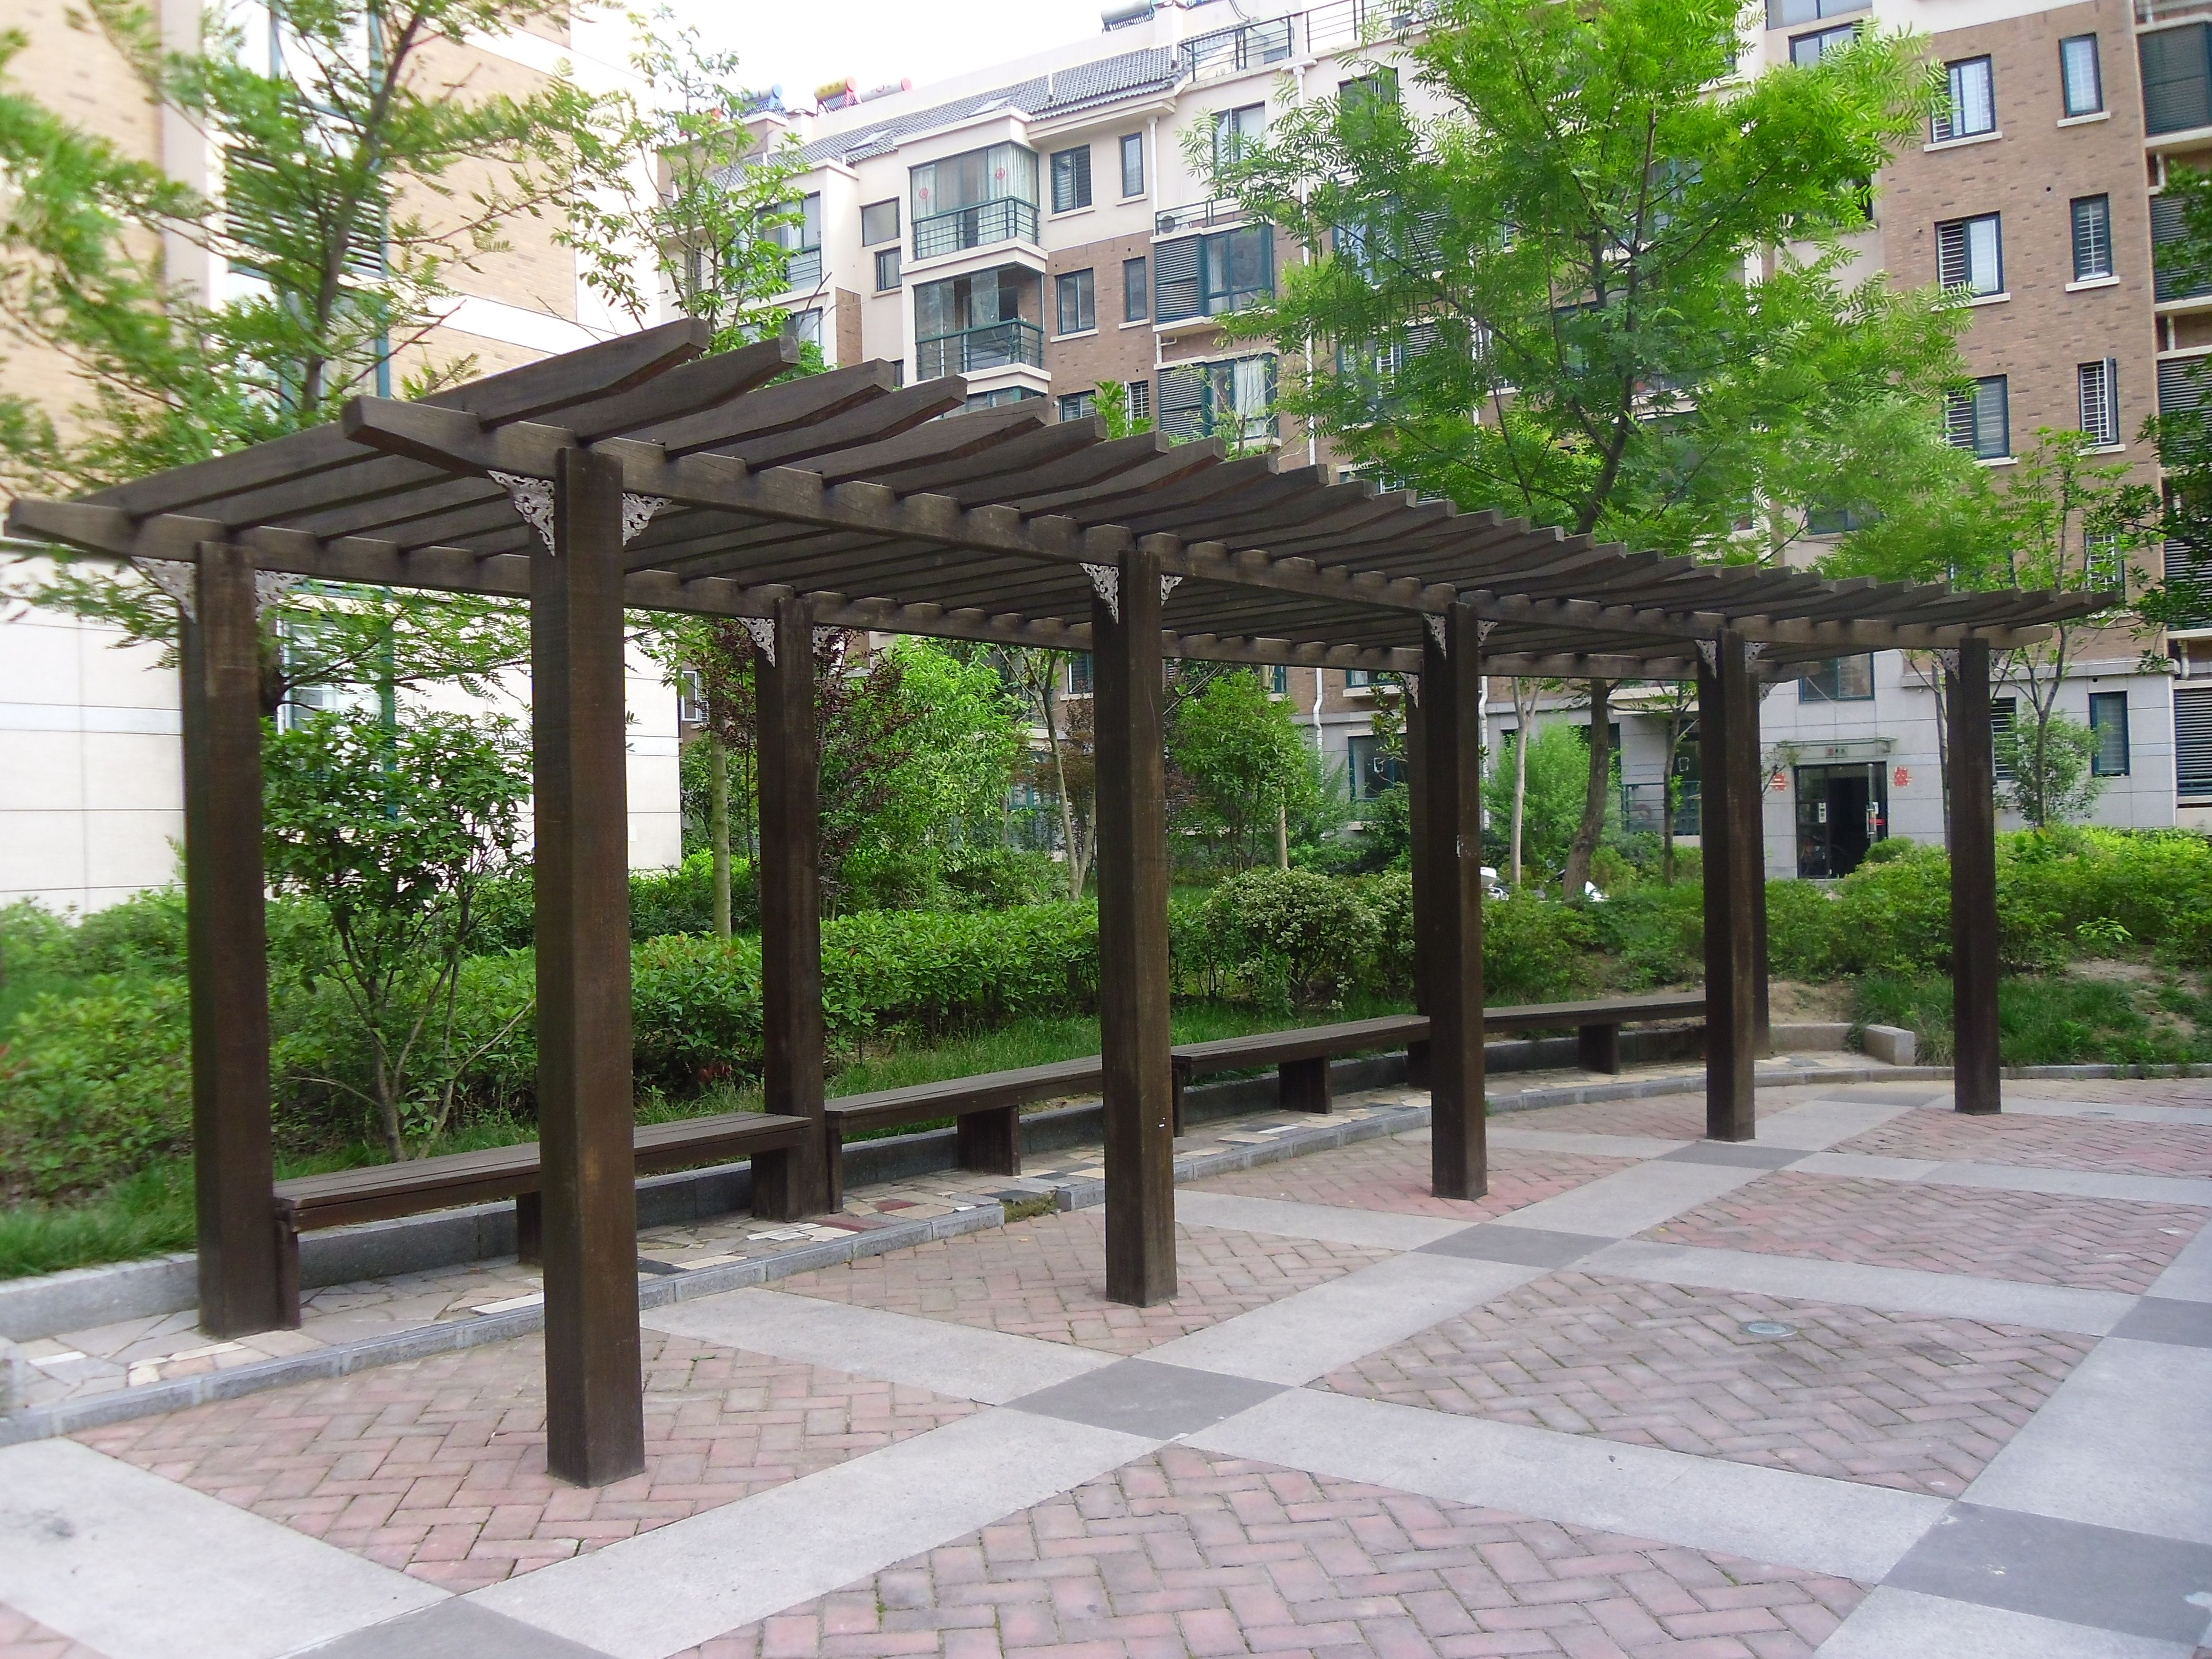 Garden decorations for sale - Pergolas